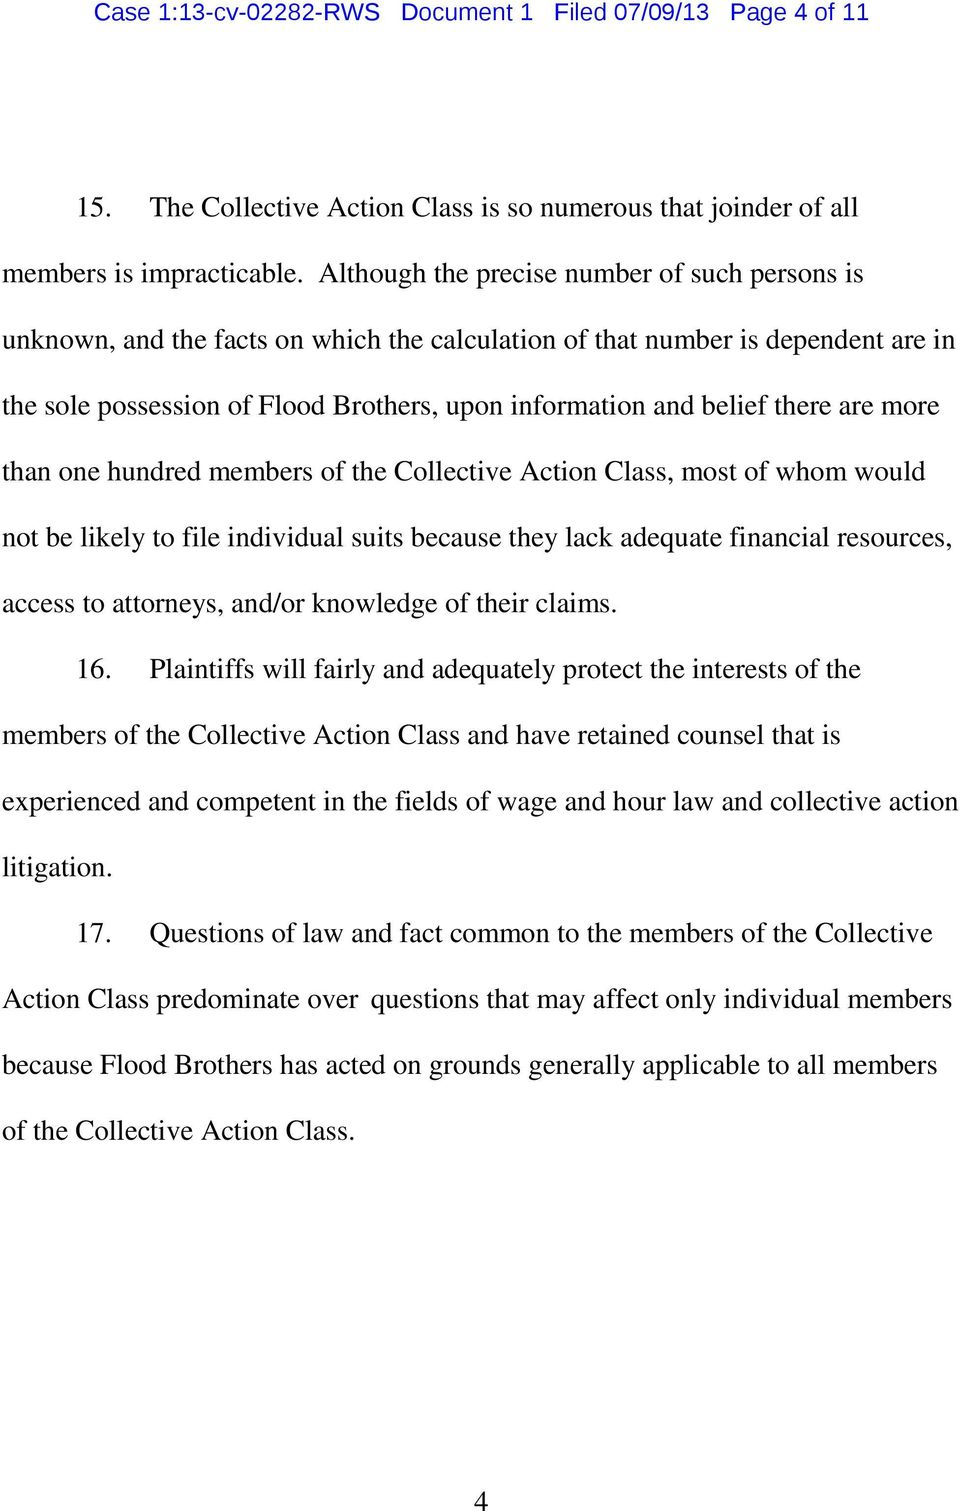 there are more than one hundred members of the Collective Action Class, most of whom would not be likely to file individual suits because they lack adequate financial resources, access to attorneys,